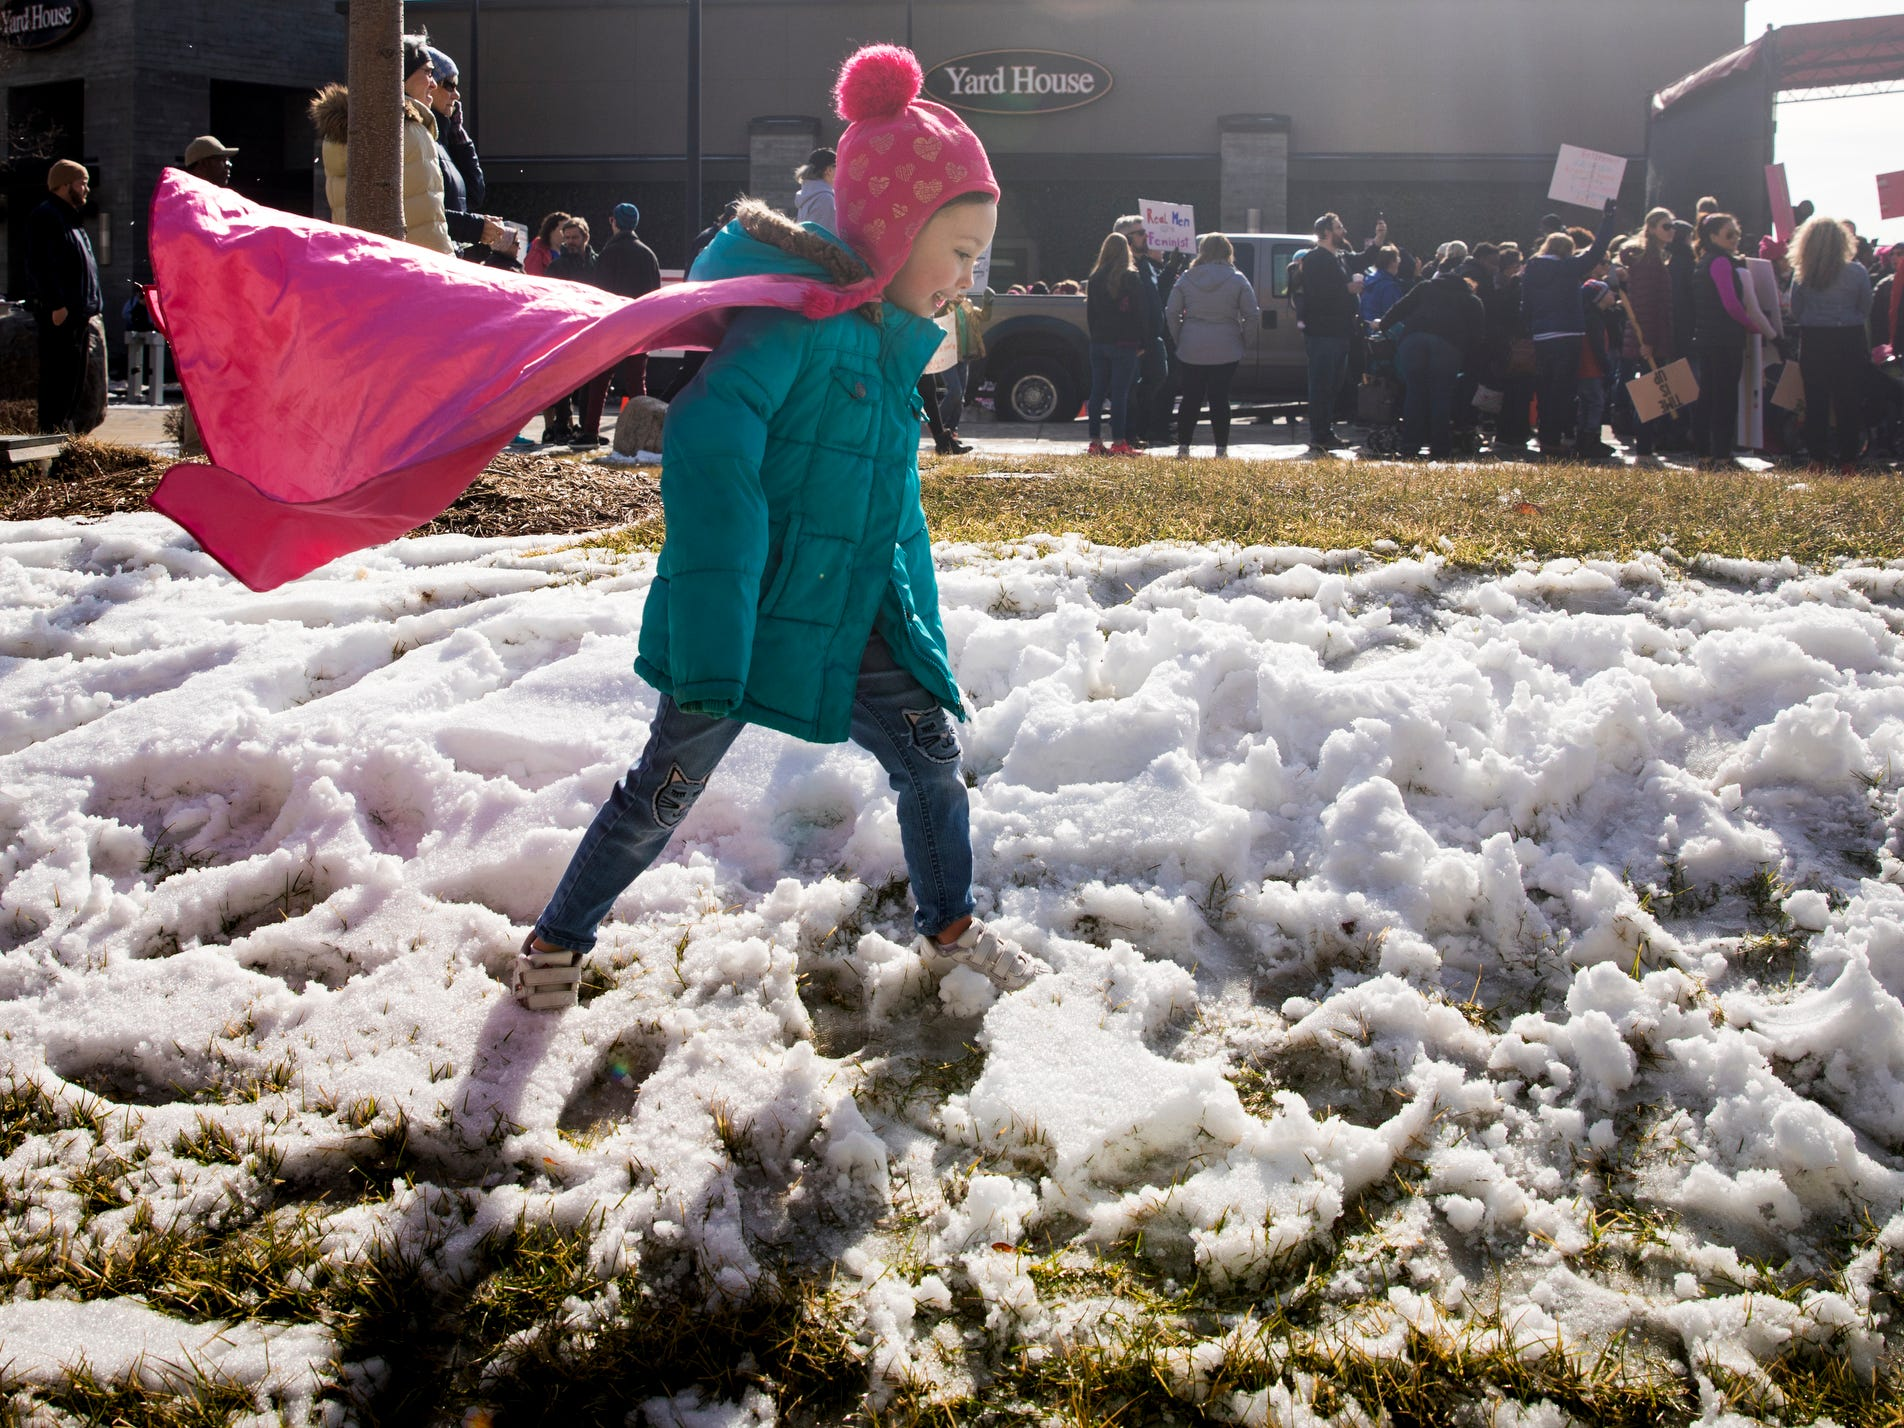 Thousands gathered for the second Cincinnati Women's March in January. The crowd was overwhelming and hard to move through. I stayed along the fringe looking for quieter moments and that's when I saw Dahlia. With a handmade pink cape, she trudged through the snow, chanting along with the marchers. Her mom watched her with pride. I loved seeing this moment in Cincinnati with people of all ages and backgrounds coming together.